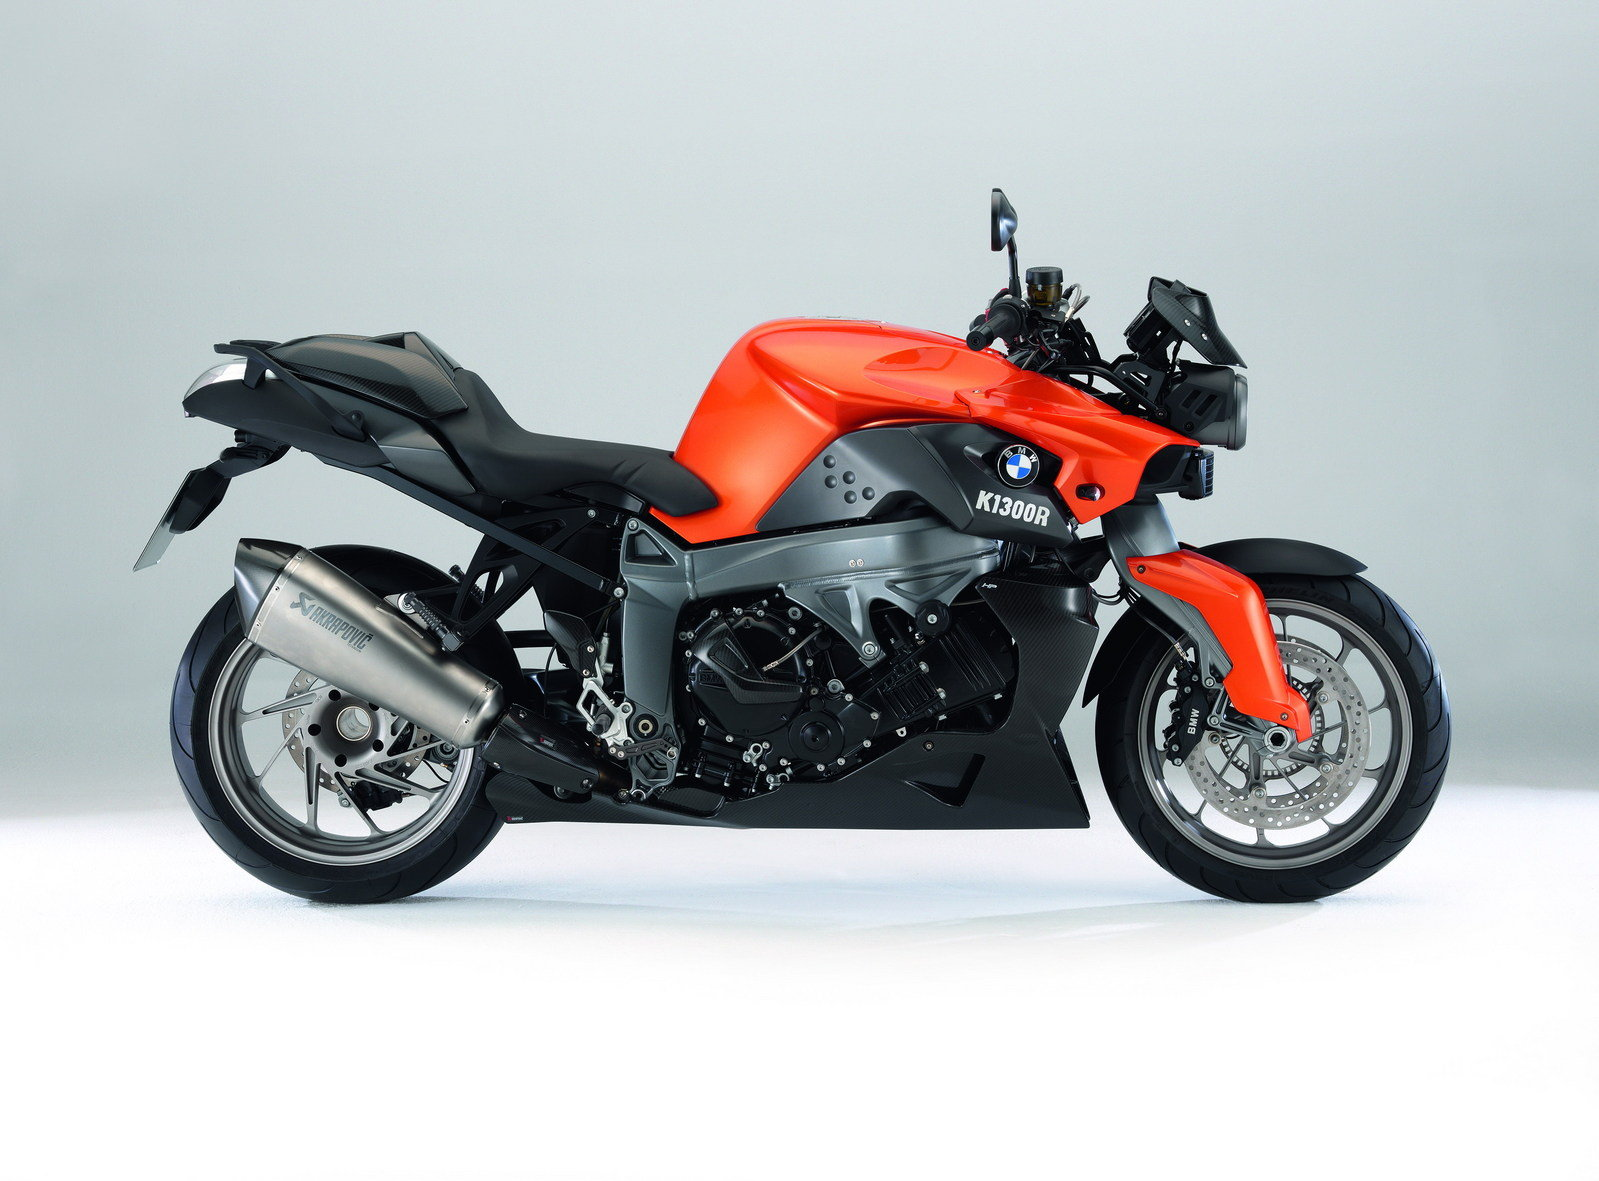 2009 bmw k 1300 r picture 302881 motorcycle review. Black Bedroom Furniture Sets. Home Design Ideas